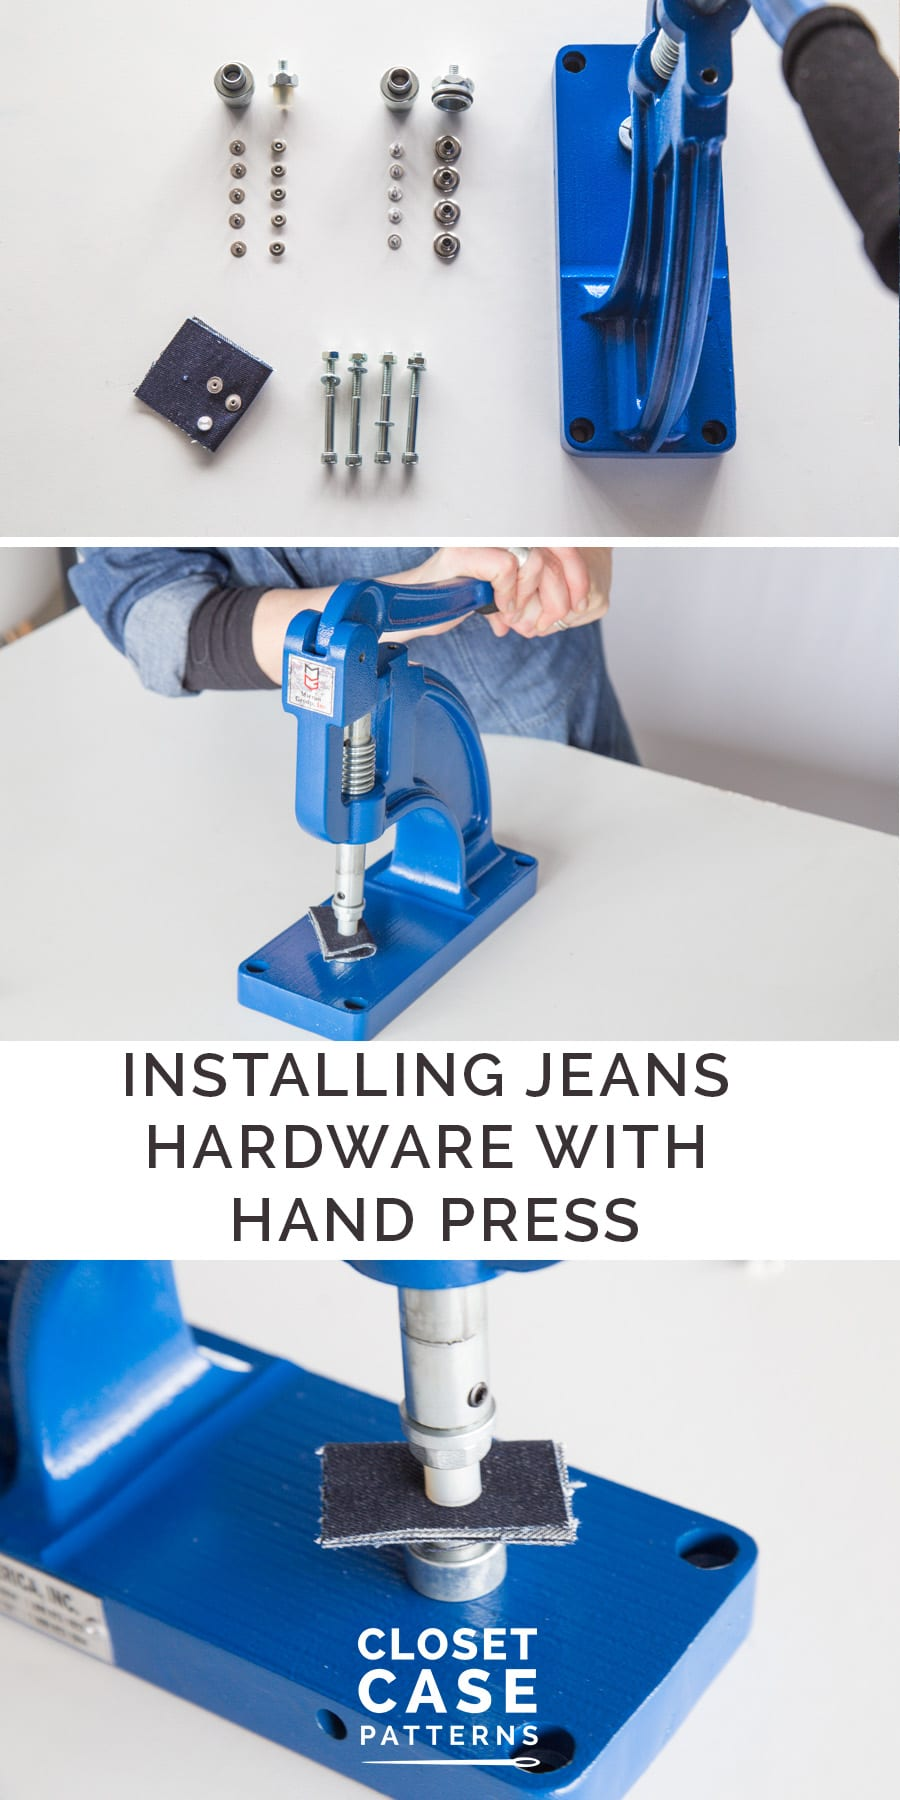 Install professional looking jeans hardware using an industrial press with this tutorial // Closet Case Patterns {permalink}